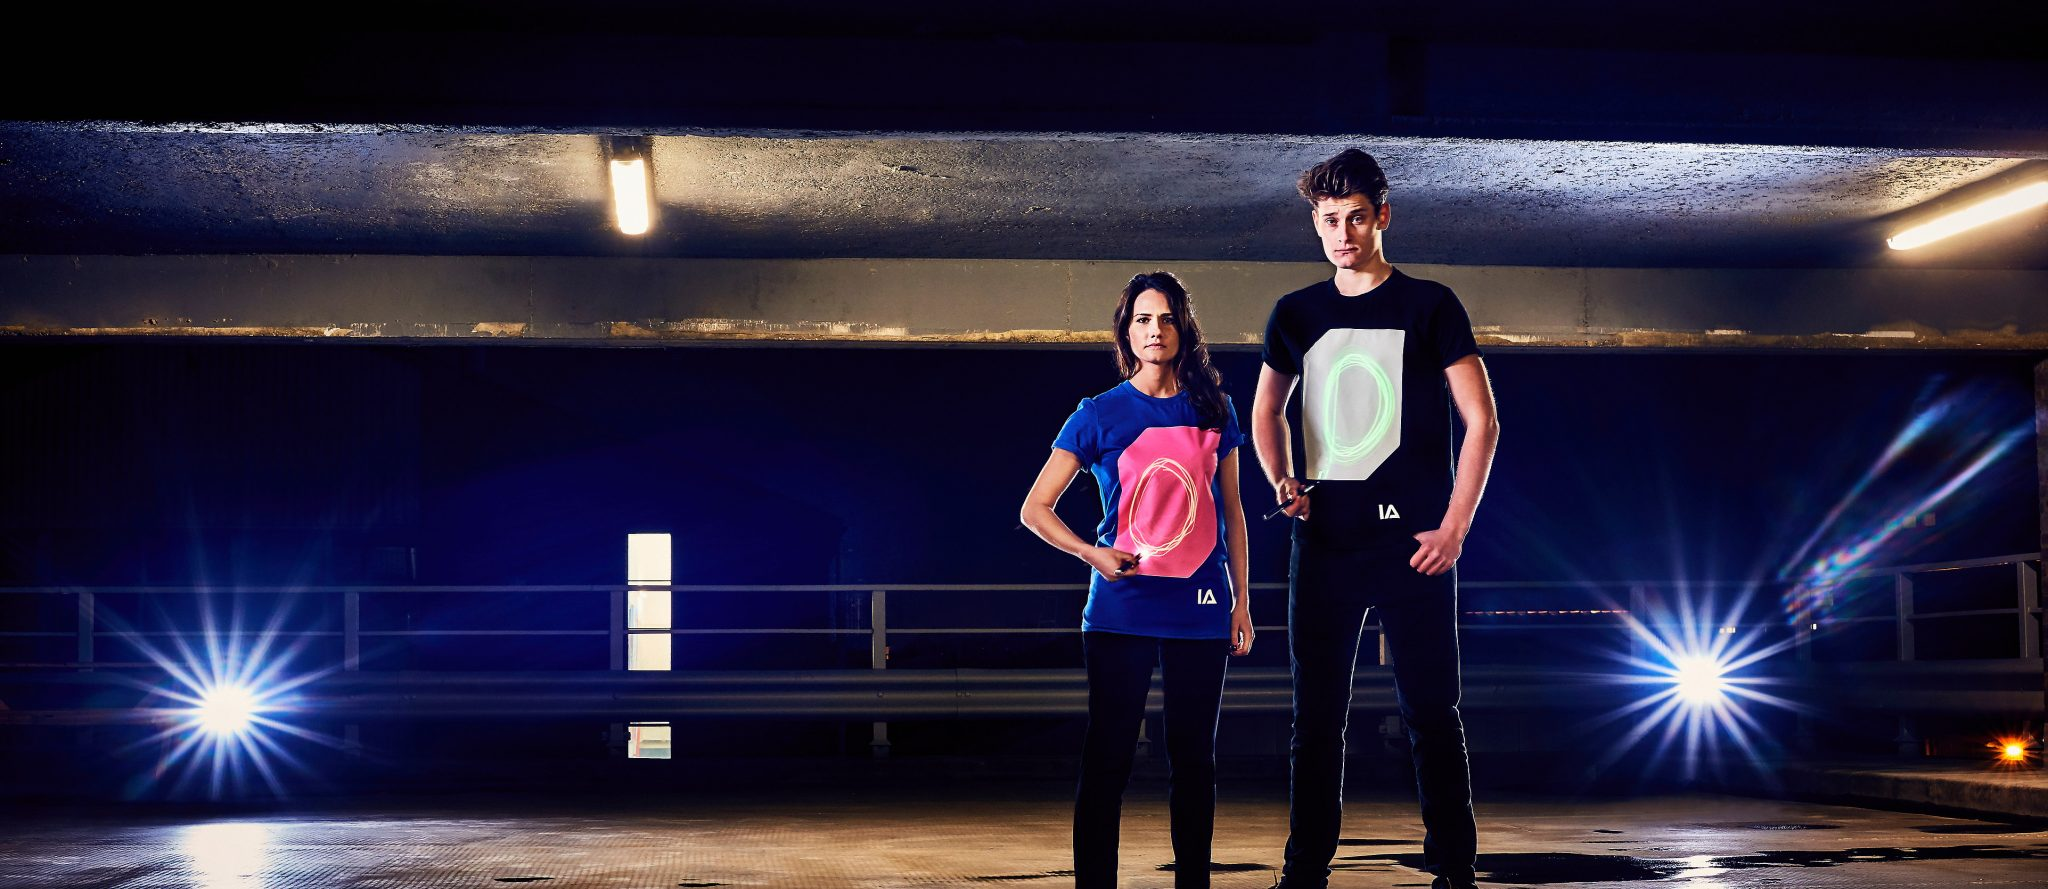 Camisetas luminiscentes interactivas Illuminated Apparel para chico y chica